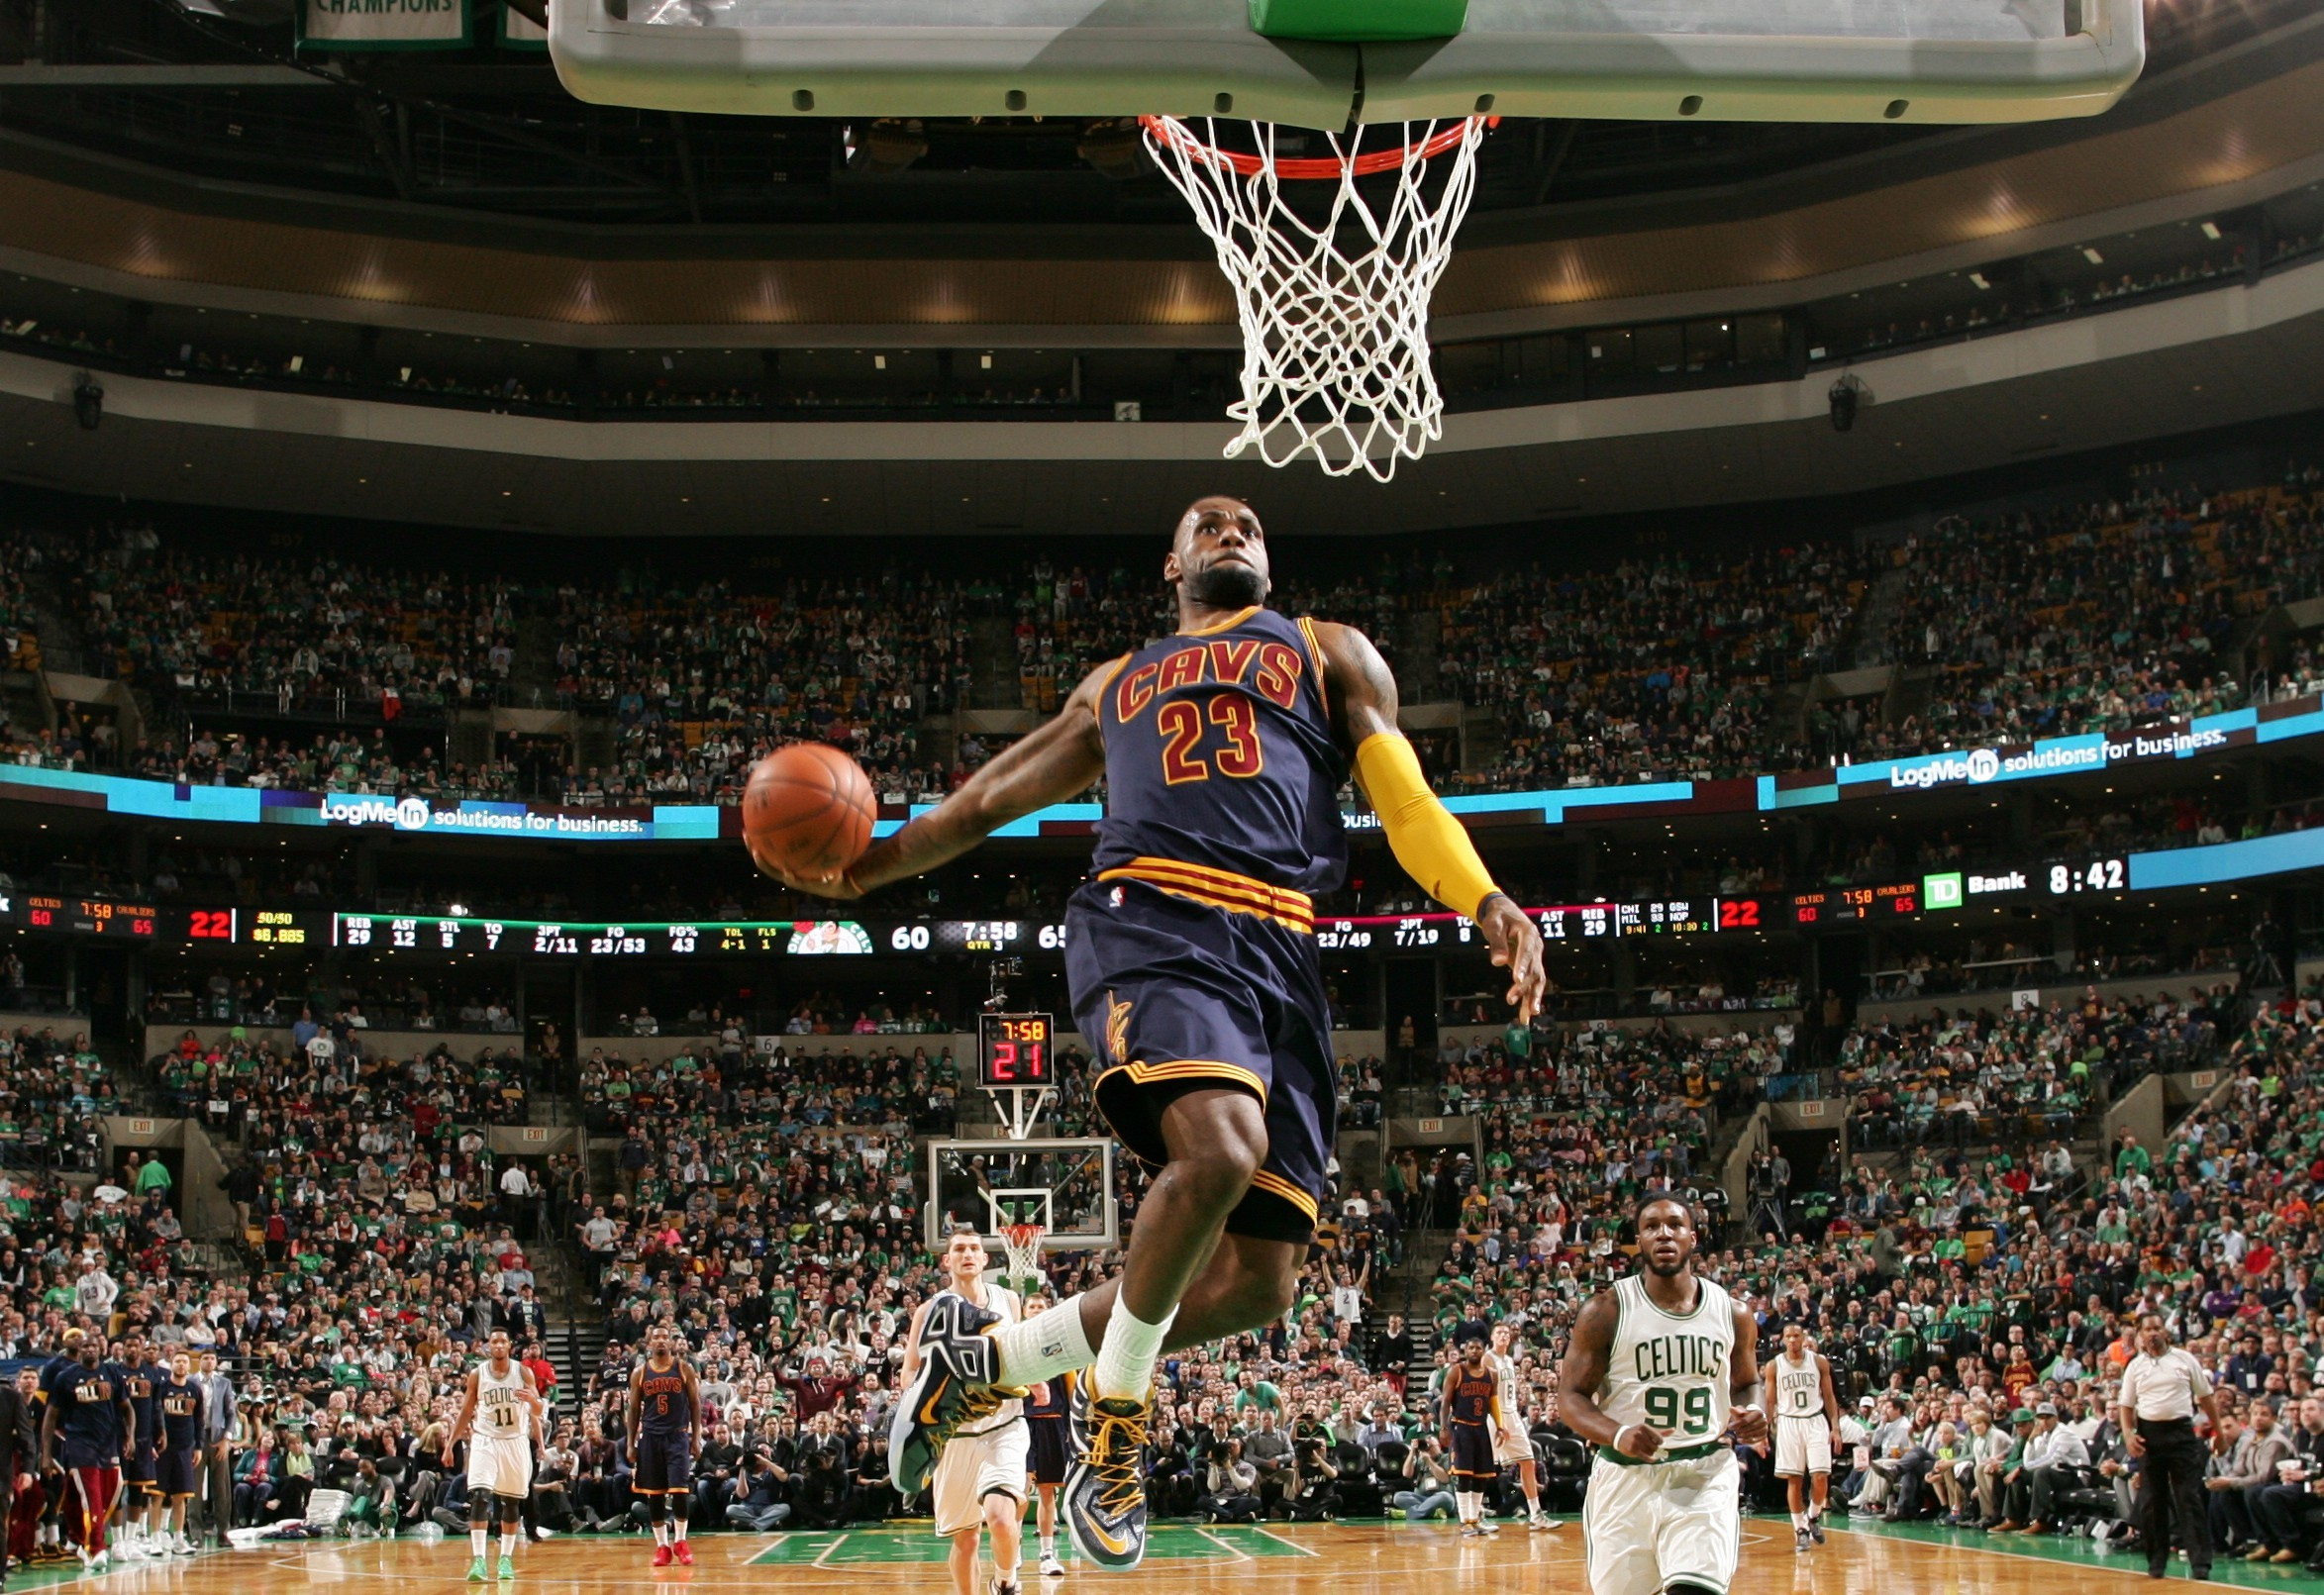 Fantastic Wallpaper Mac Lebron James - 438303-free-lebron-james-wallpaper-dunk-2347x1611  Graphic_85948.jpg